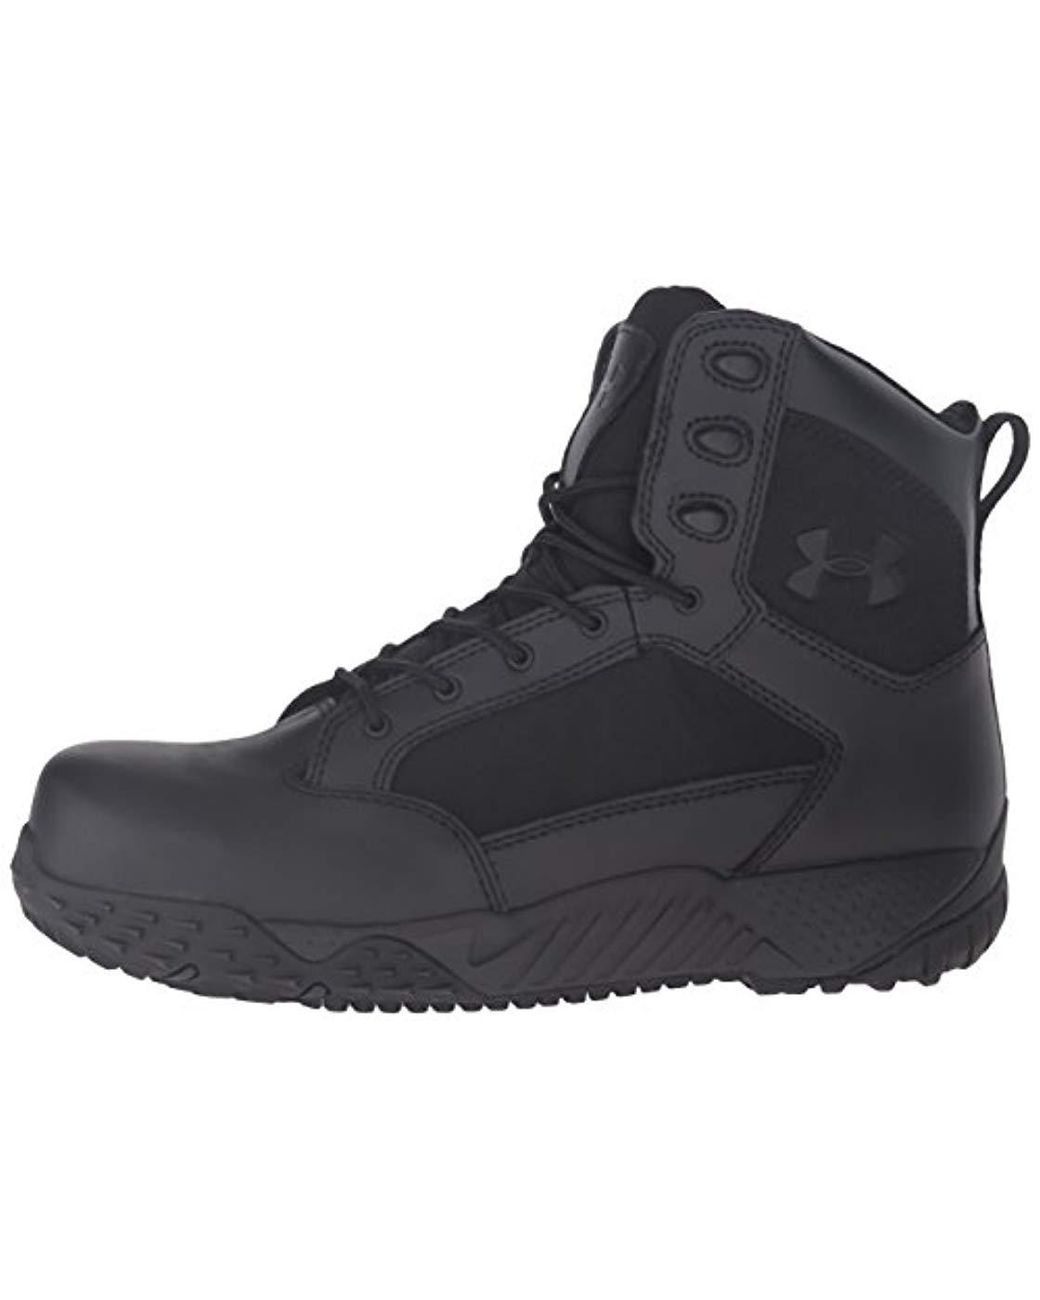 Under Armour Leather Stellar Tactical Protection Boating